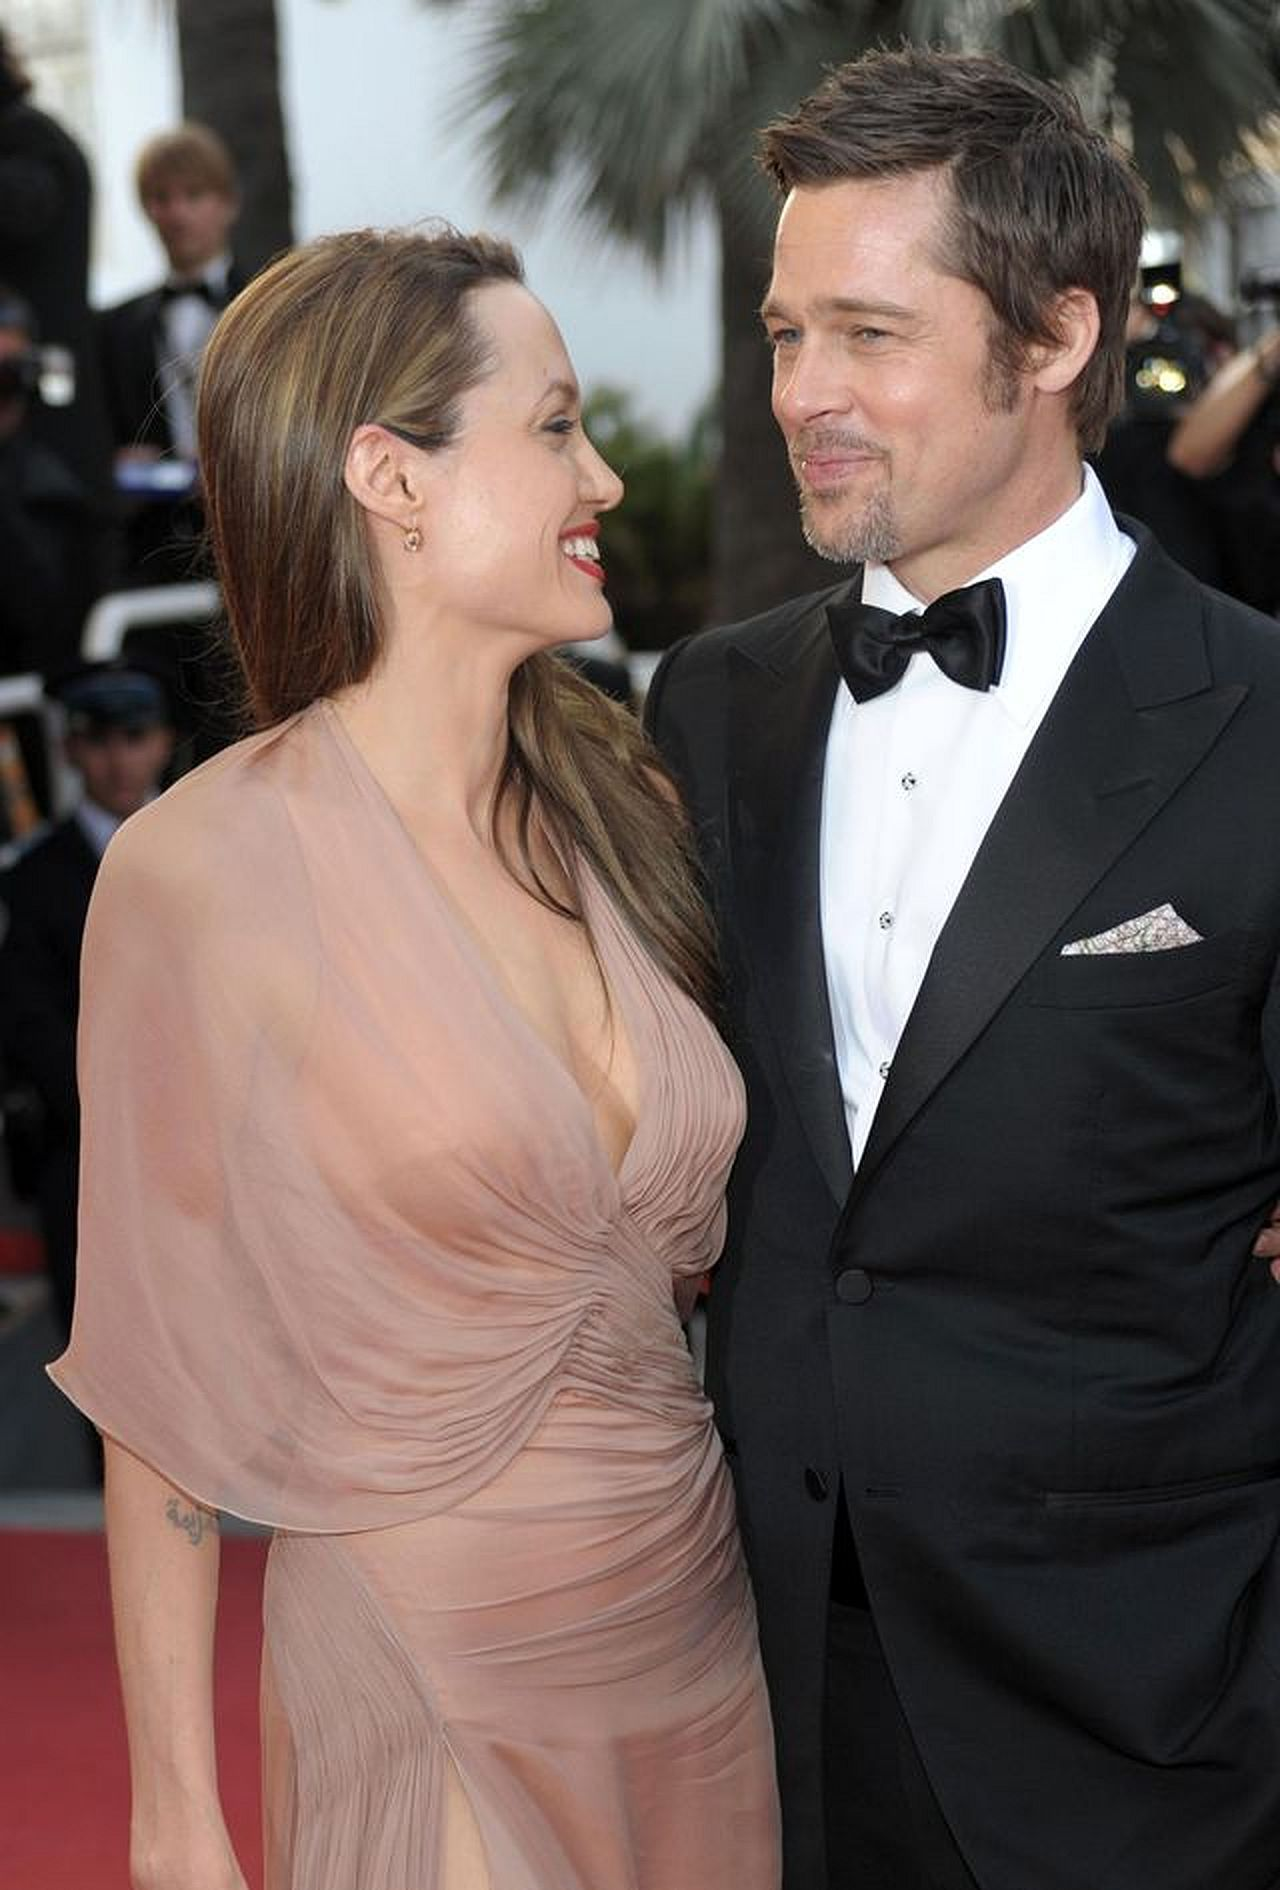 Angelina Jolie has filed for divorce from Brad Pitt